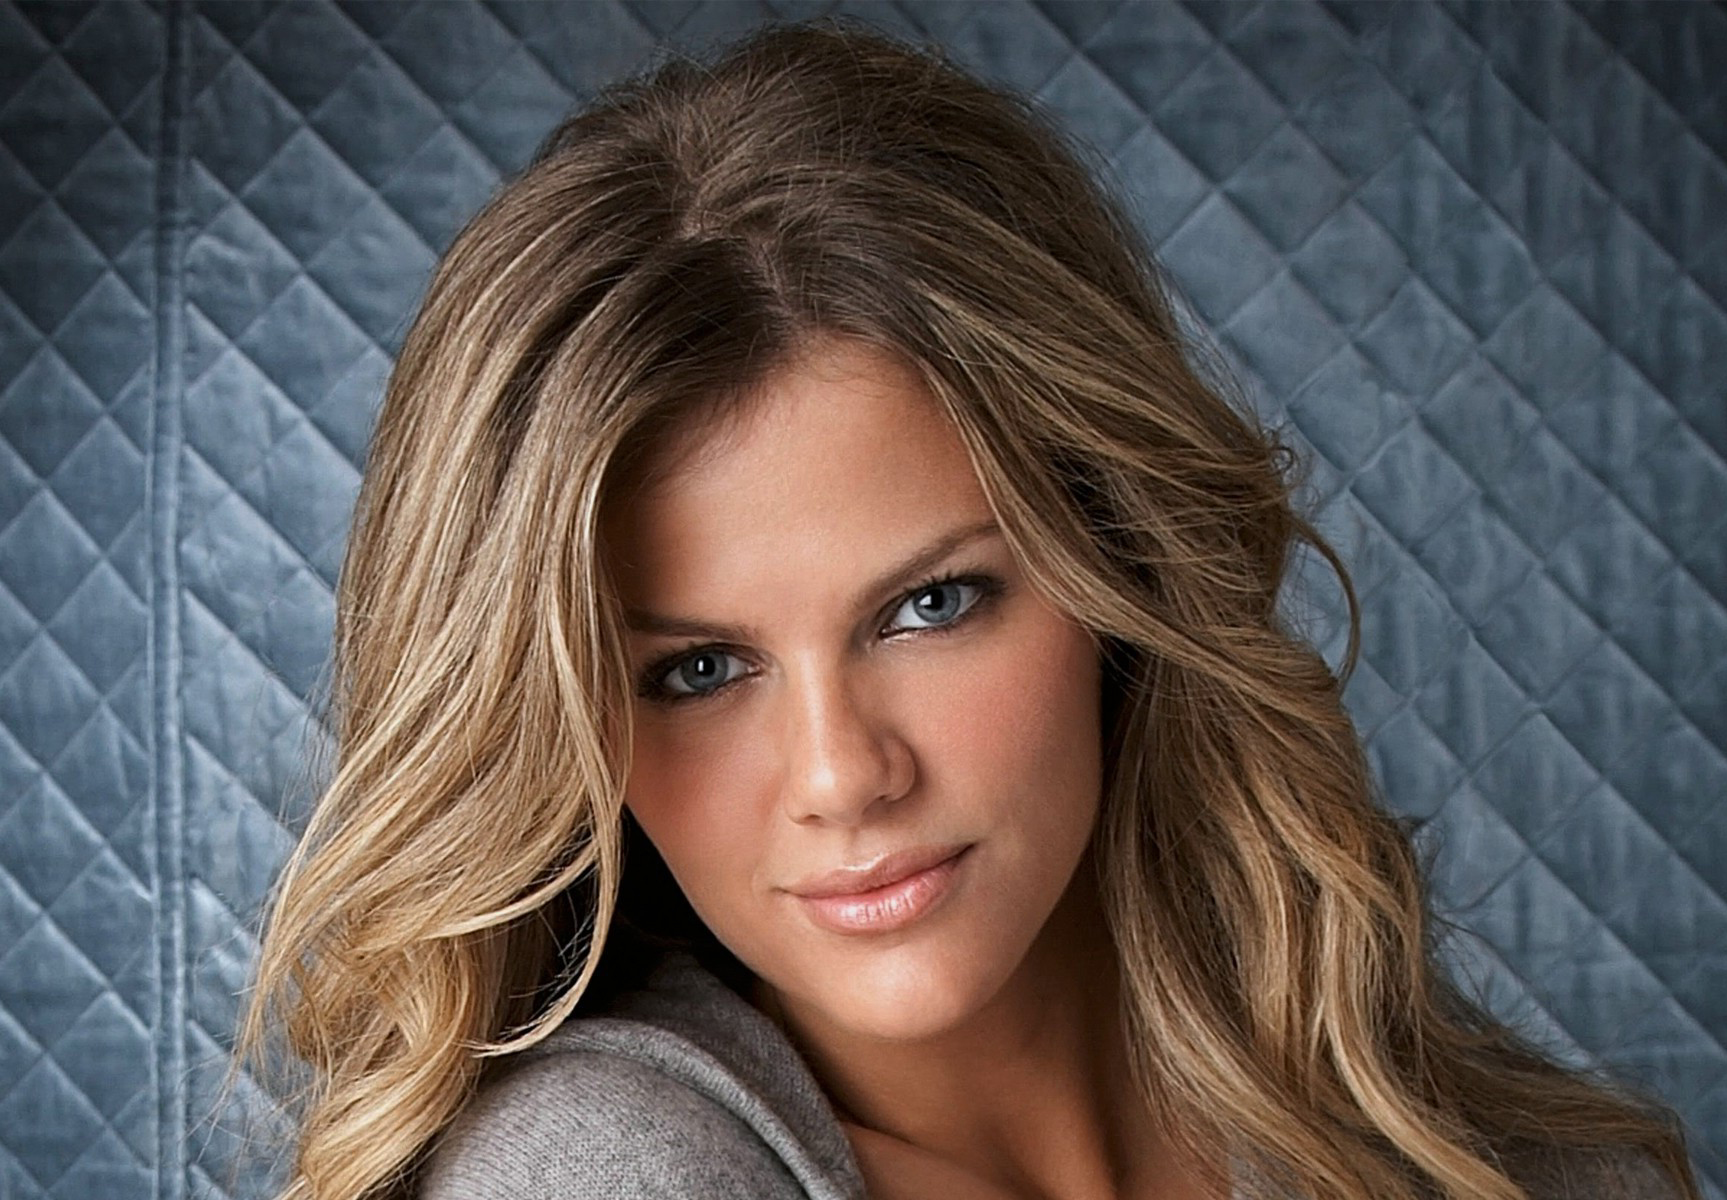 Brooklyn Decker - Height, Weight, Bra Size, Measurements & Bio | Celebie